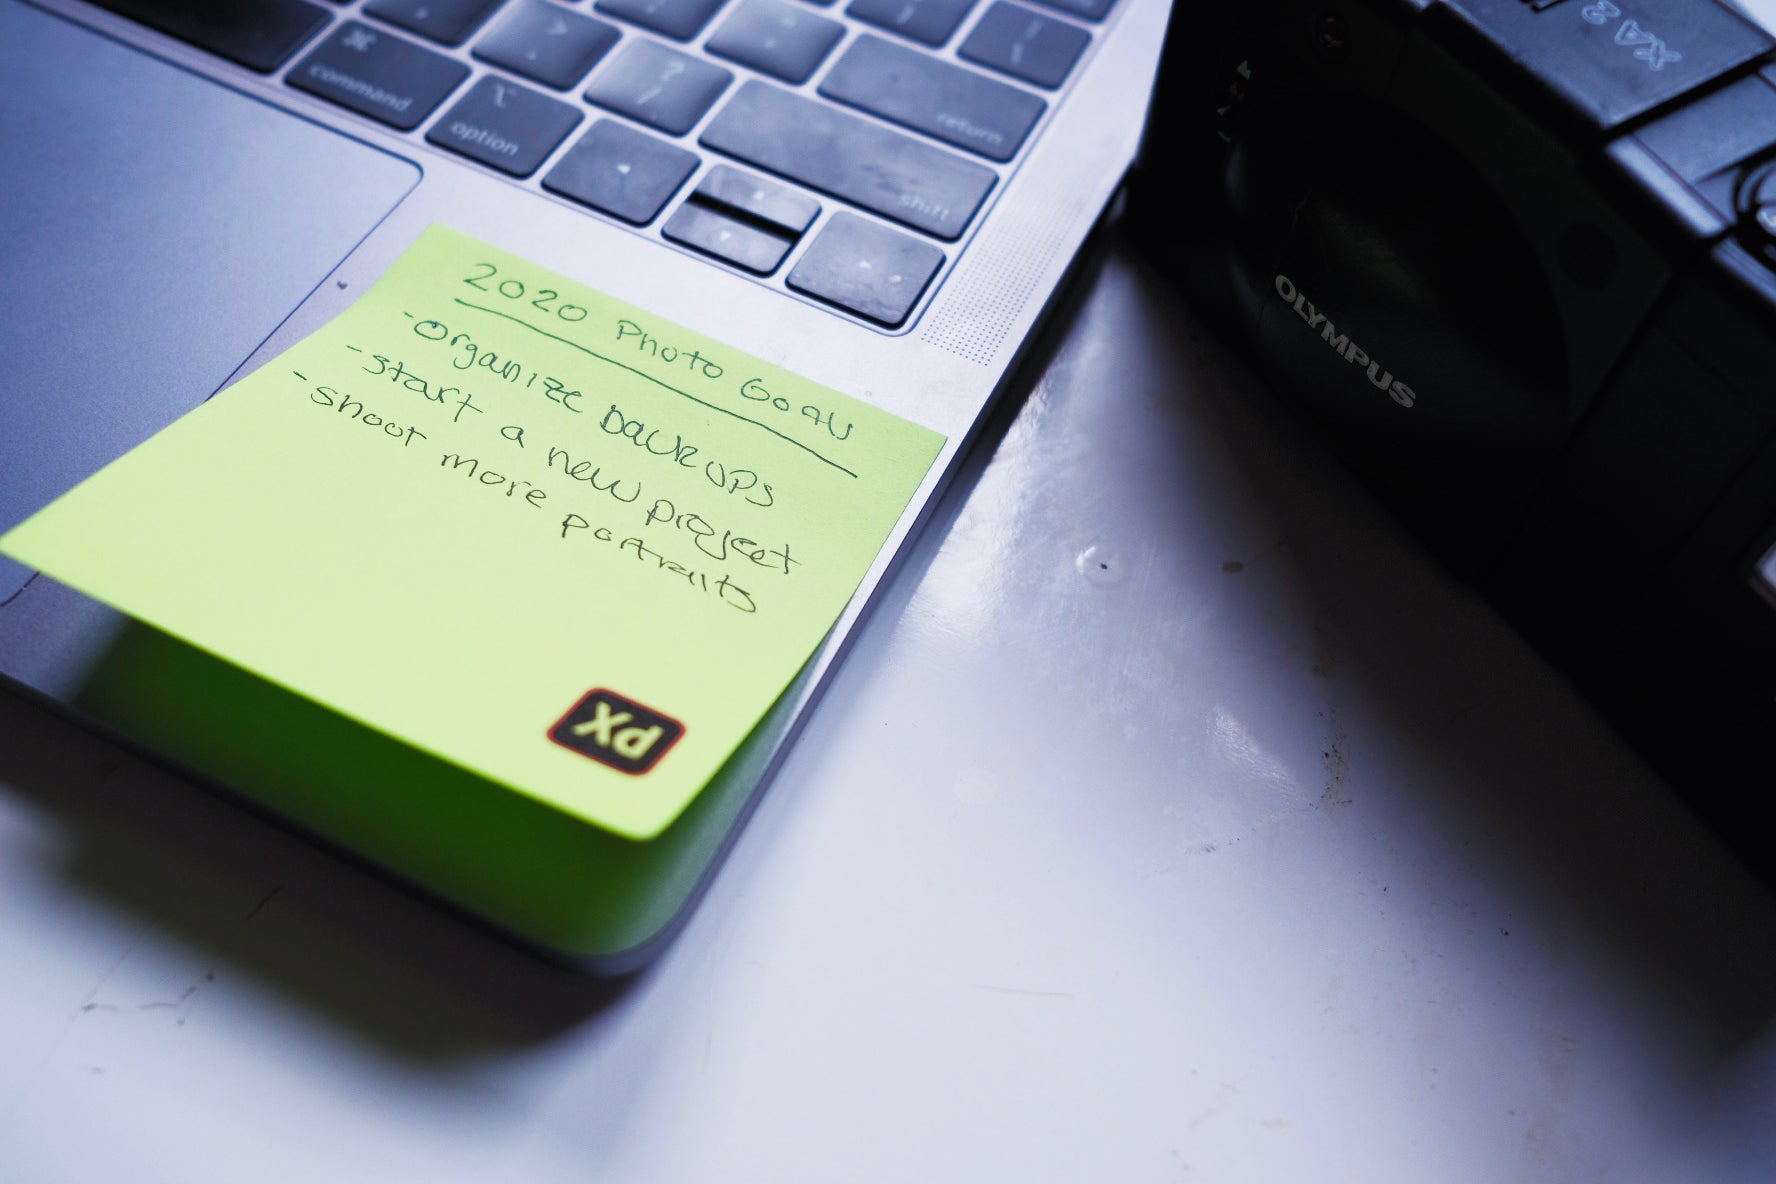 sticky note with 2020 photography resolutions written on it